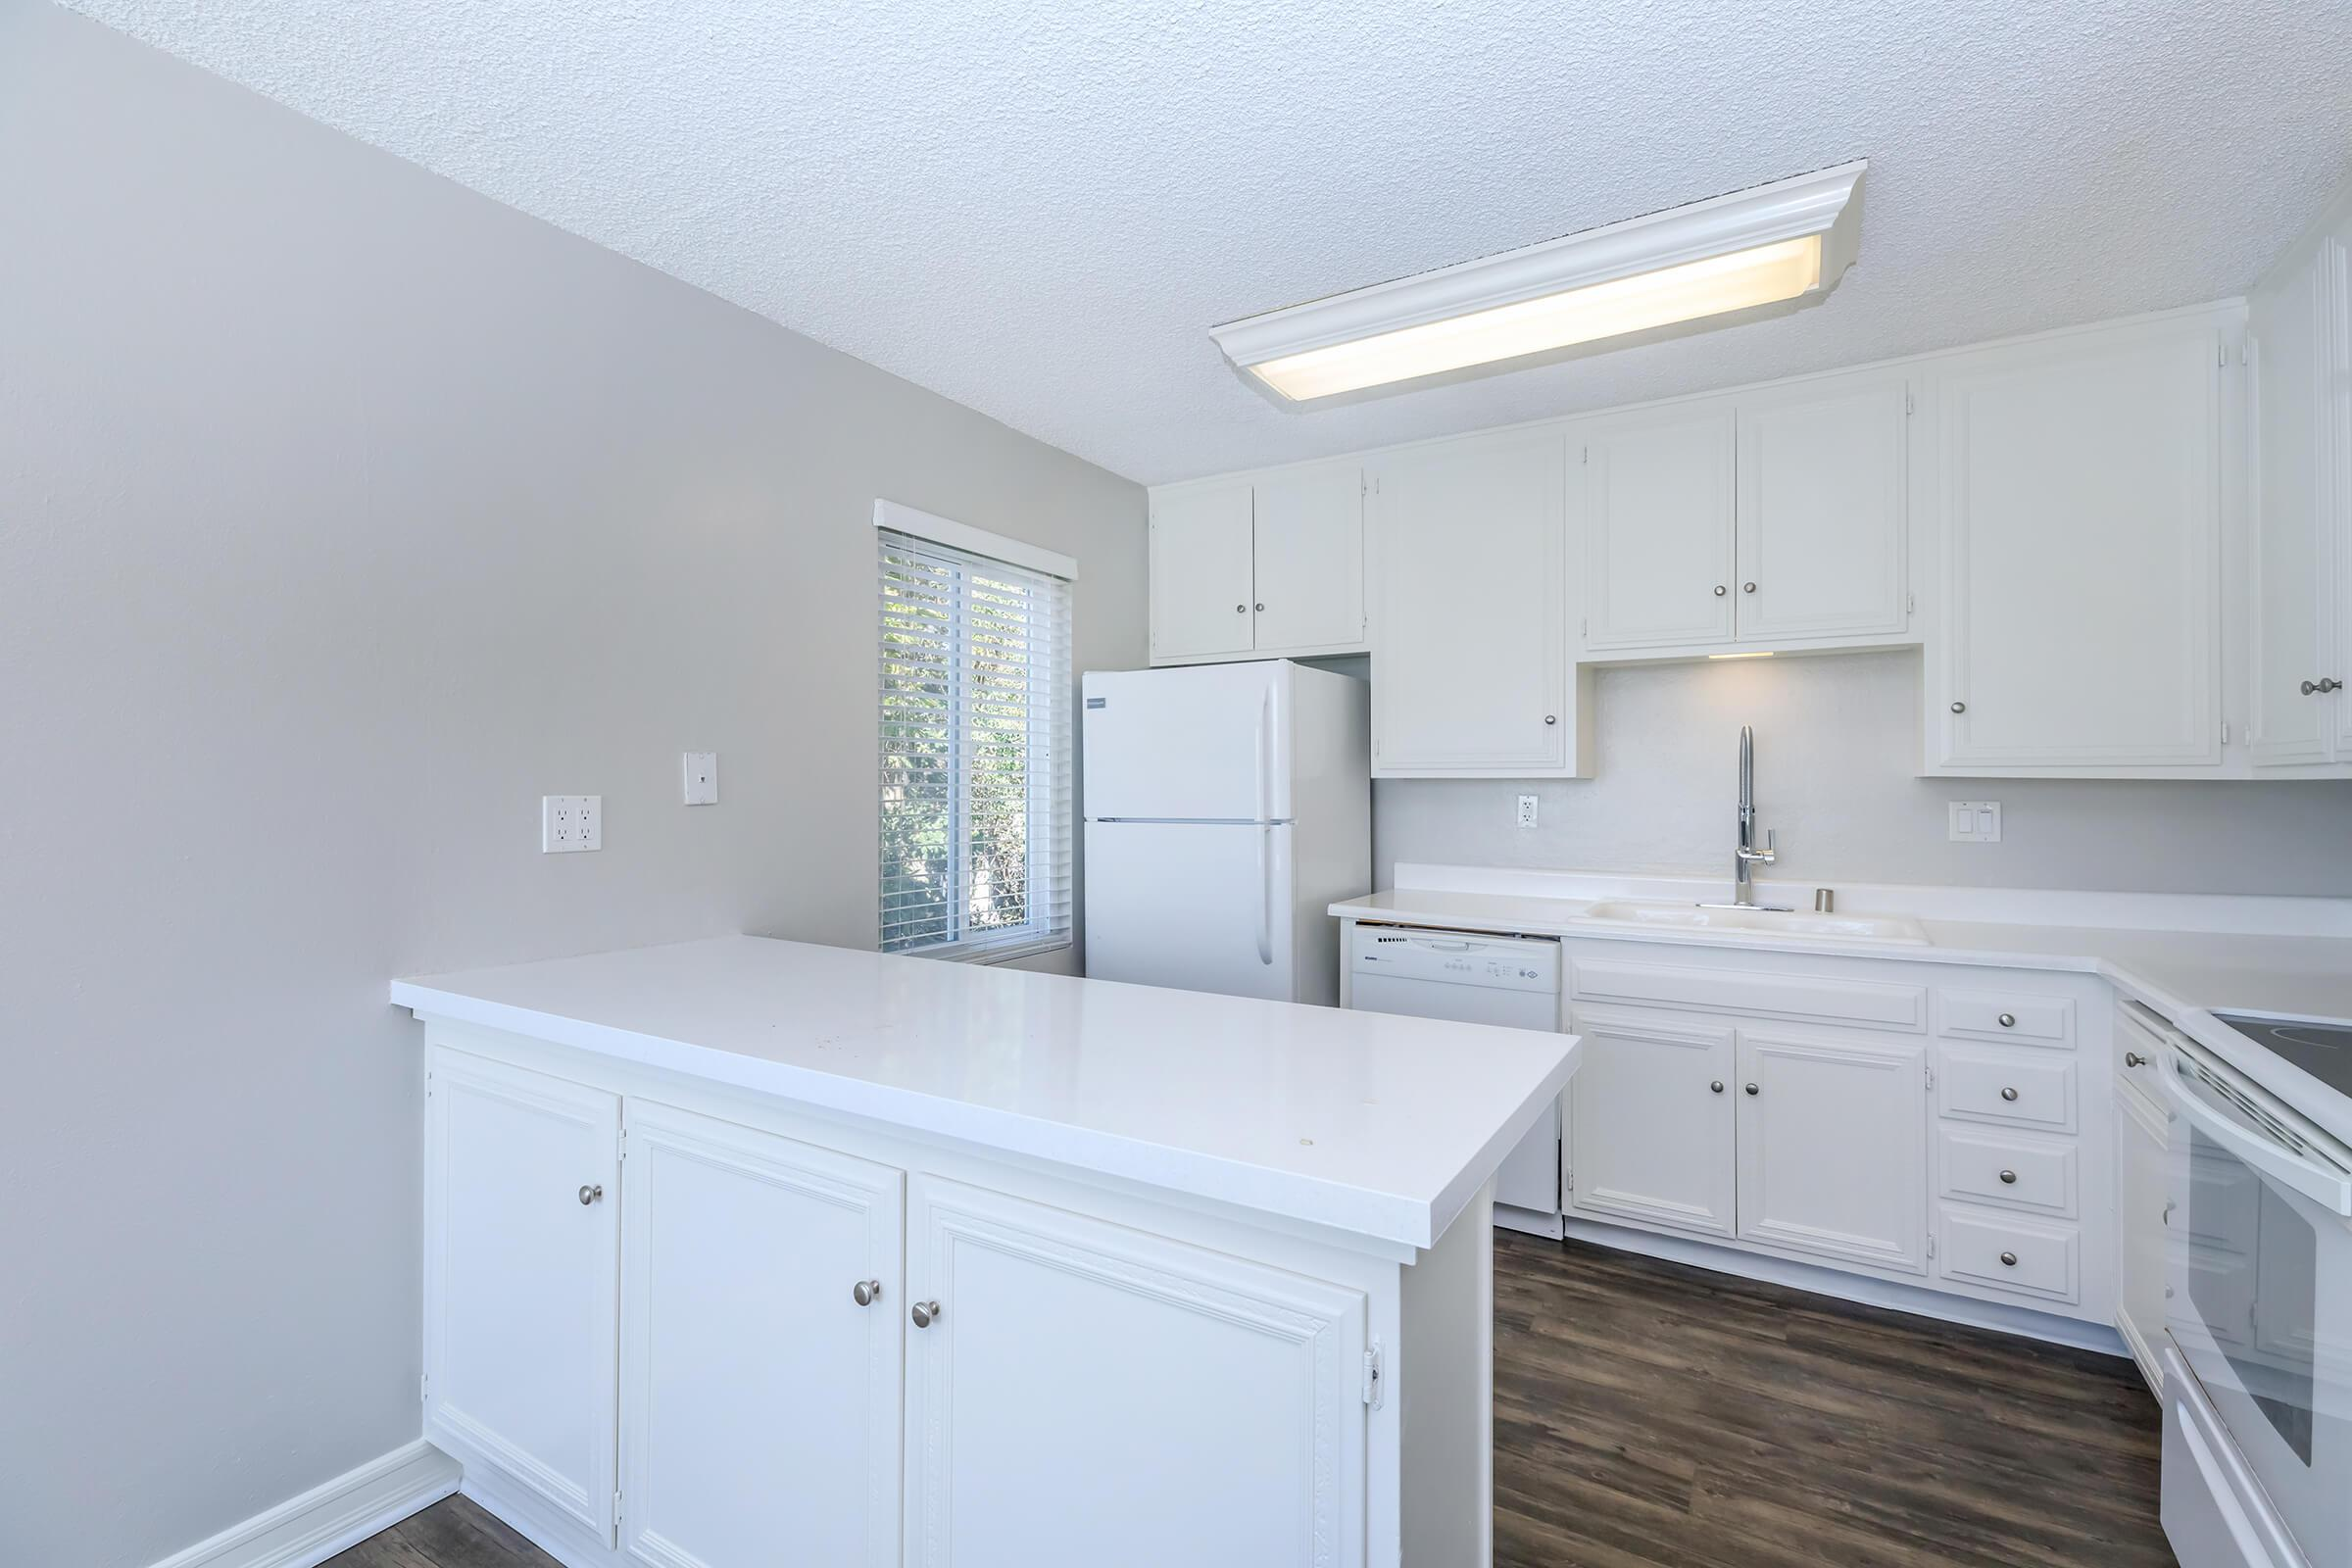 a kitchen with a sink and a refrigerator